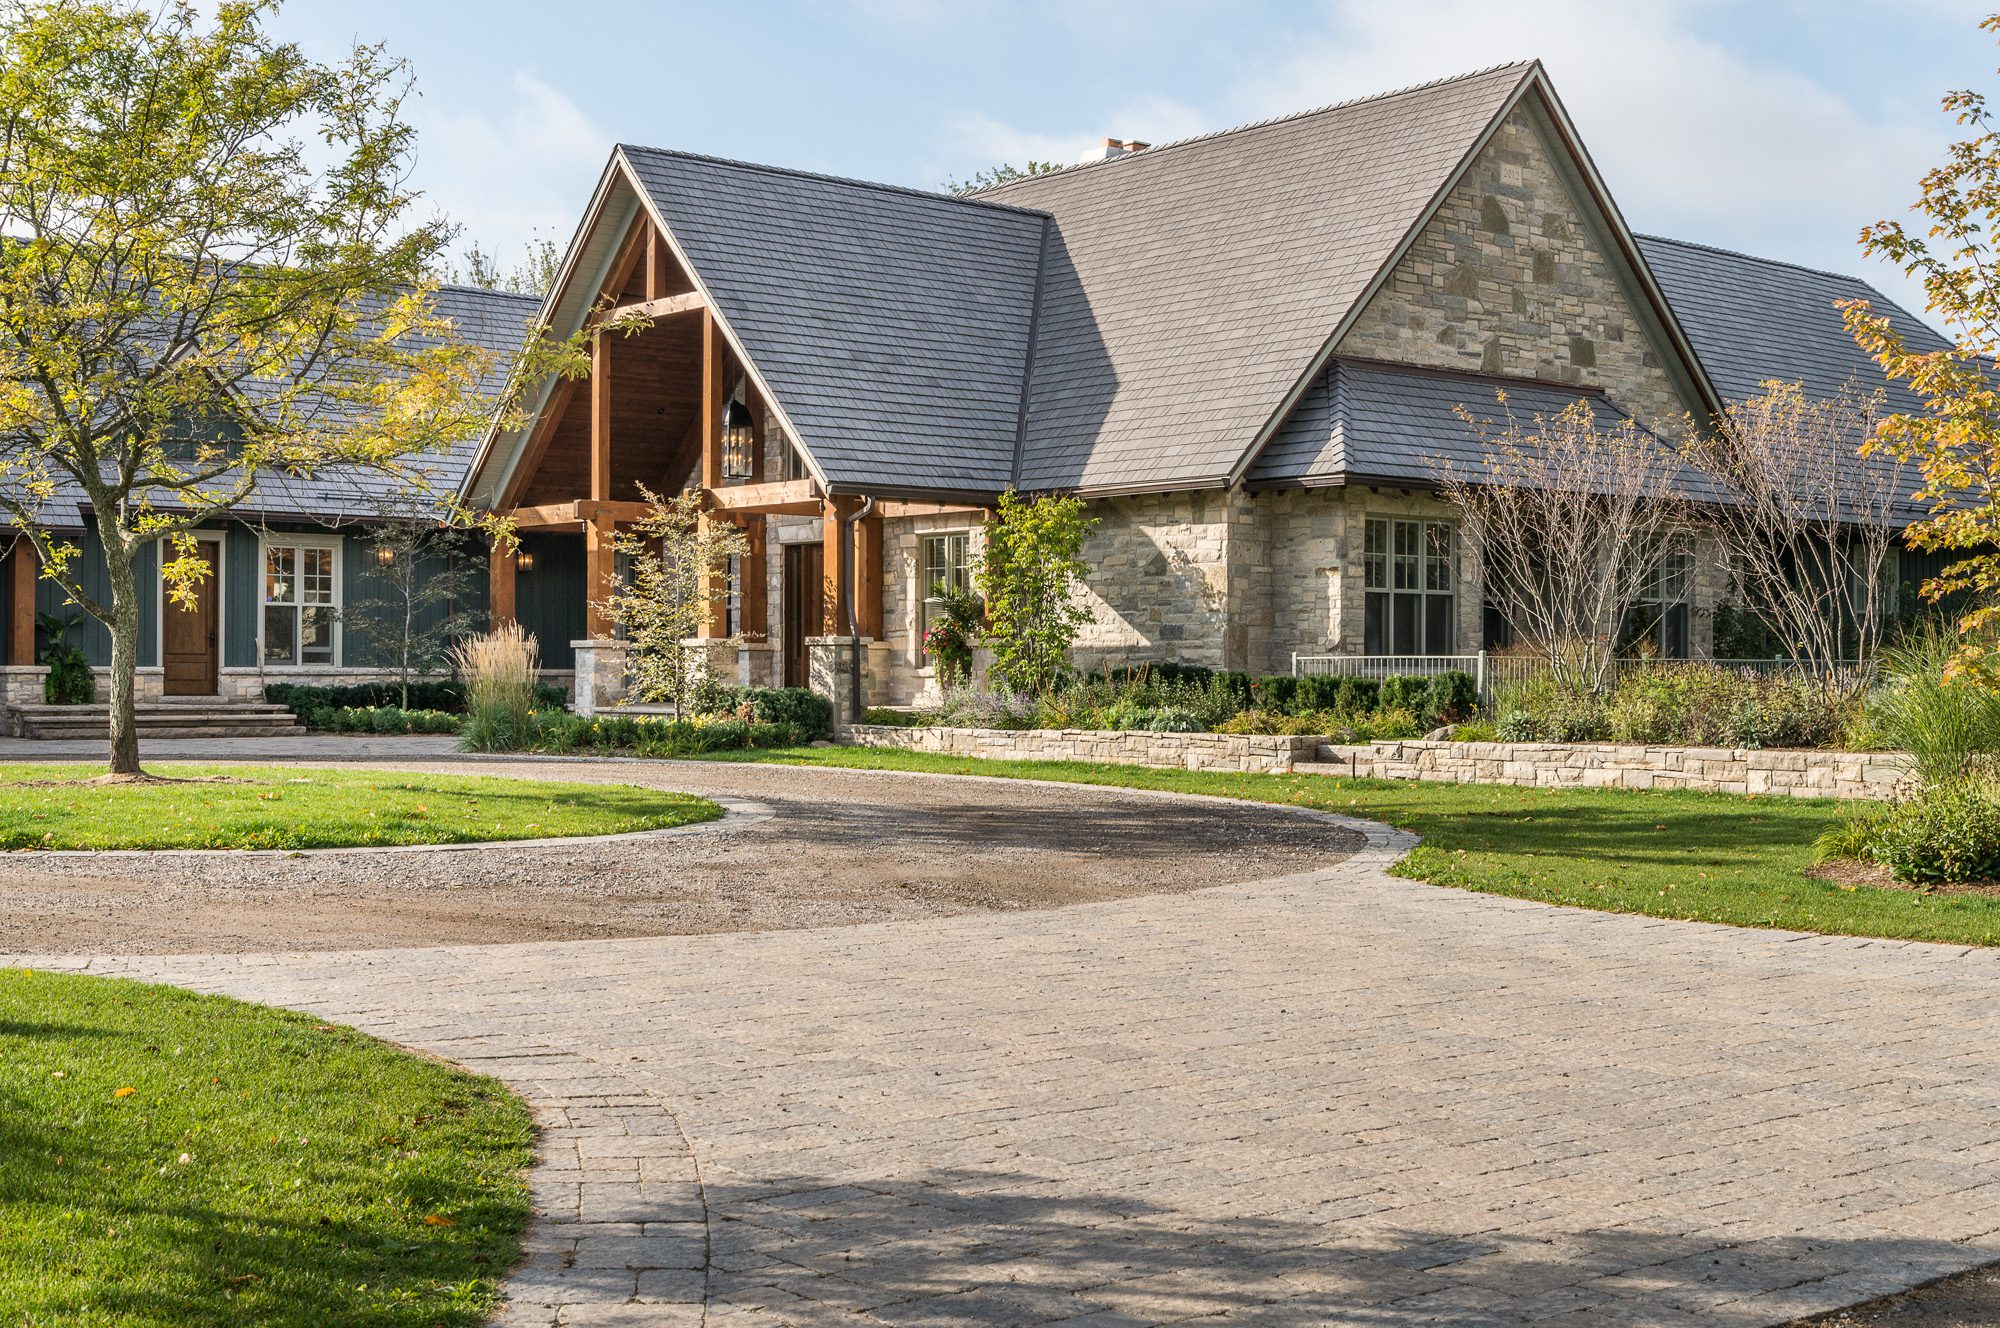 Normerica Timber Frame, Exterior, Country House, Front